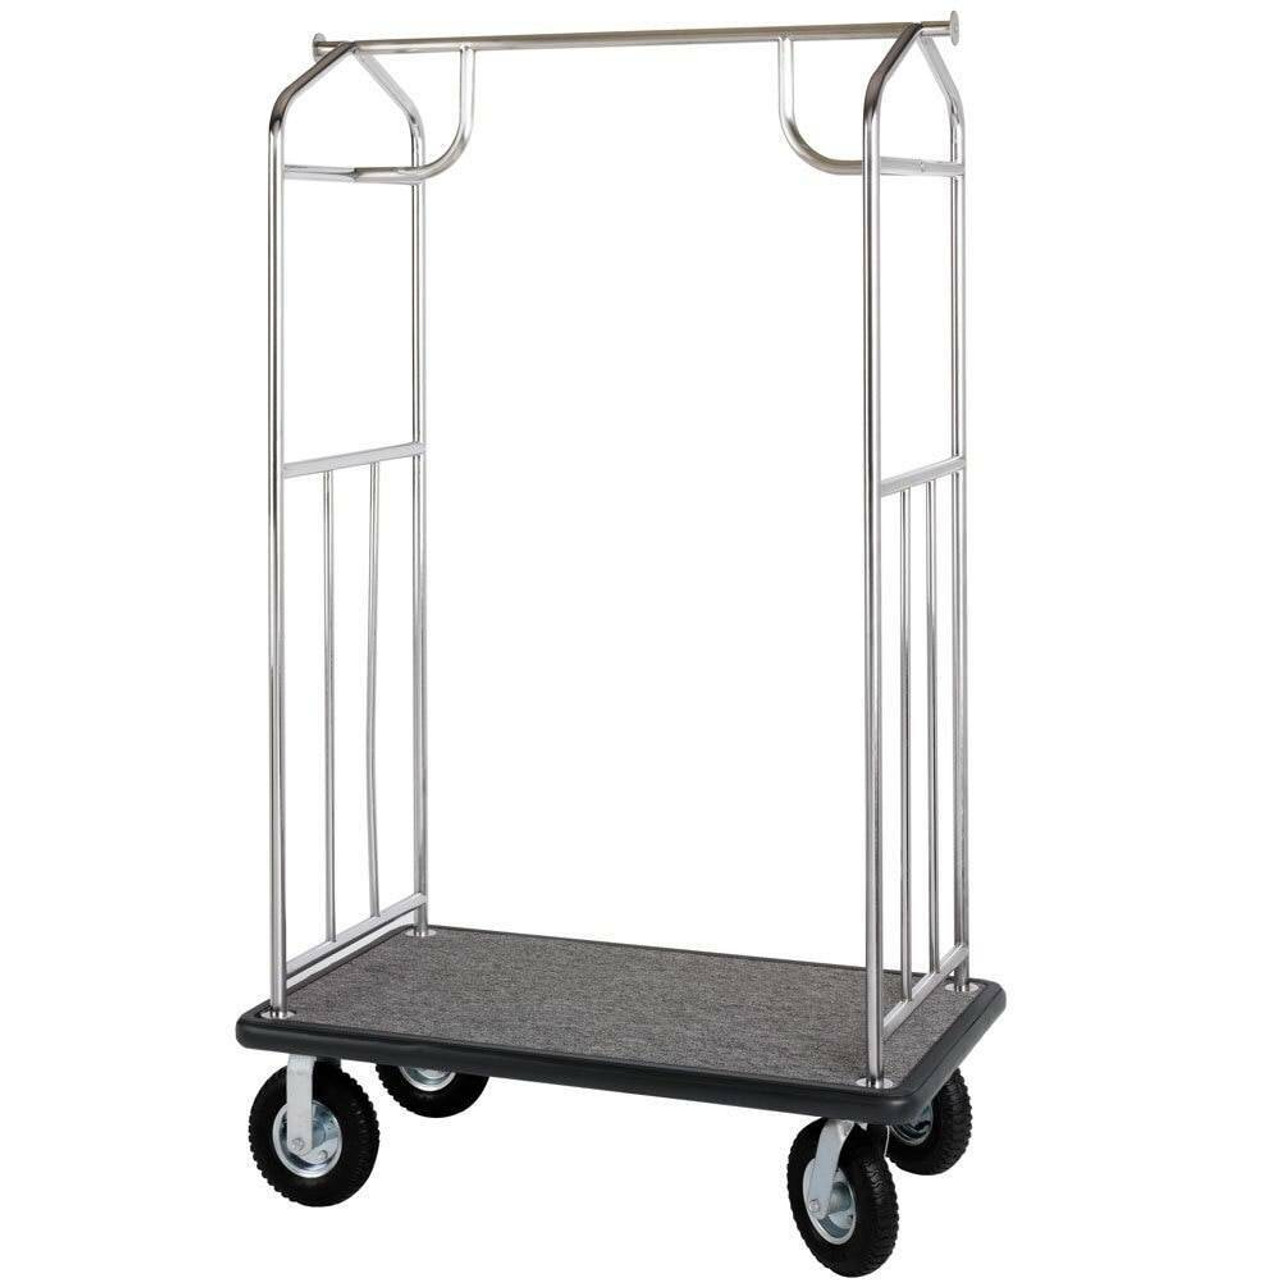 Chrome HOSPITALITY 1 SOURCE BELLMANS CART or TRANSPORTER - ALL STYLES